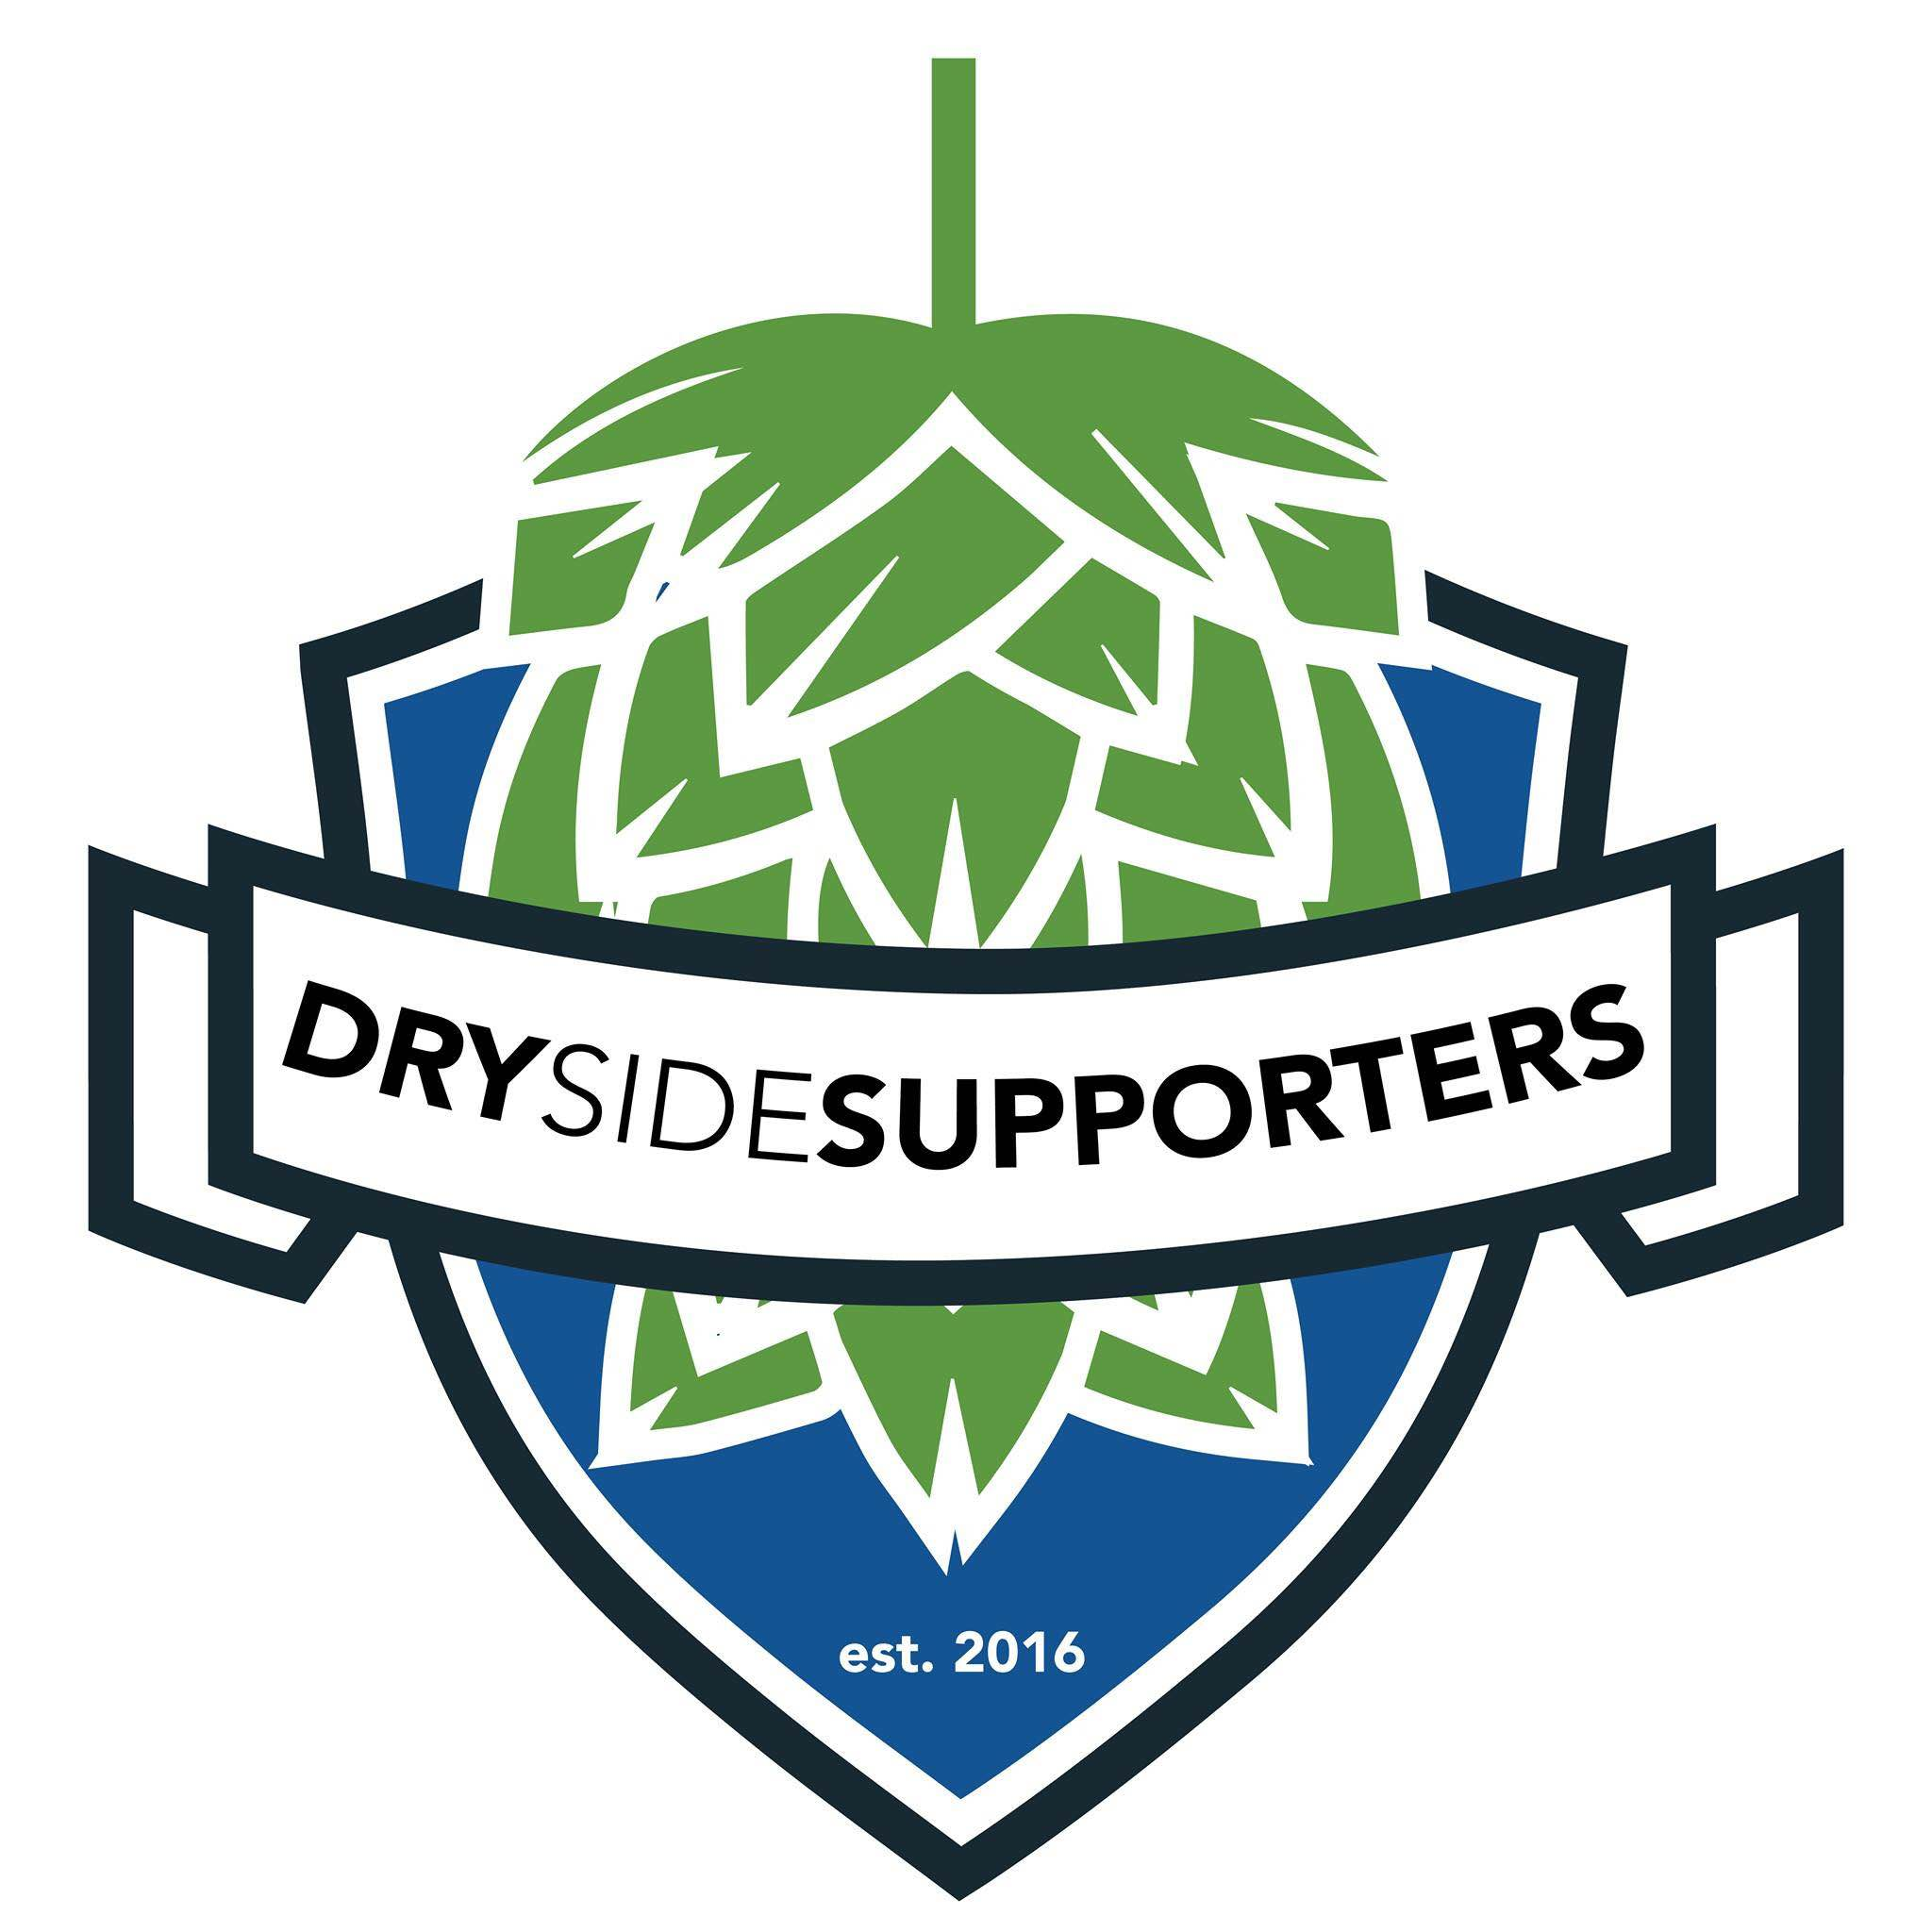 Supporters clipart group leader Subgroups Supporters Dry Emerald Supporters